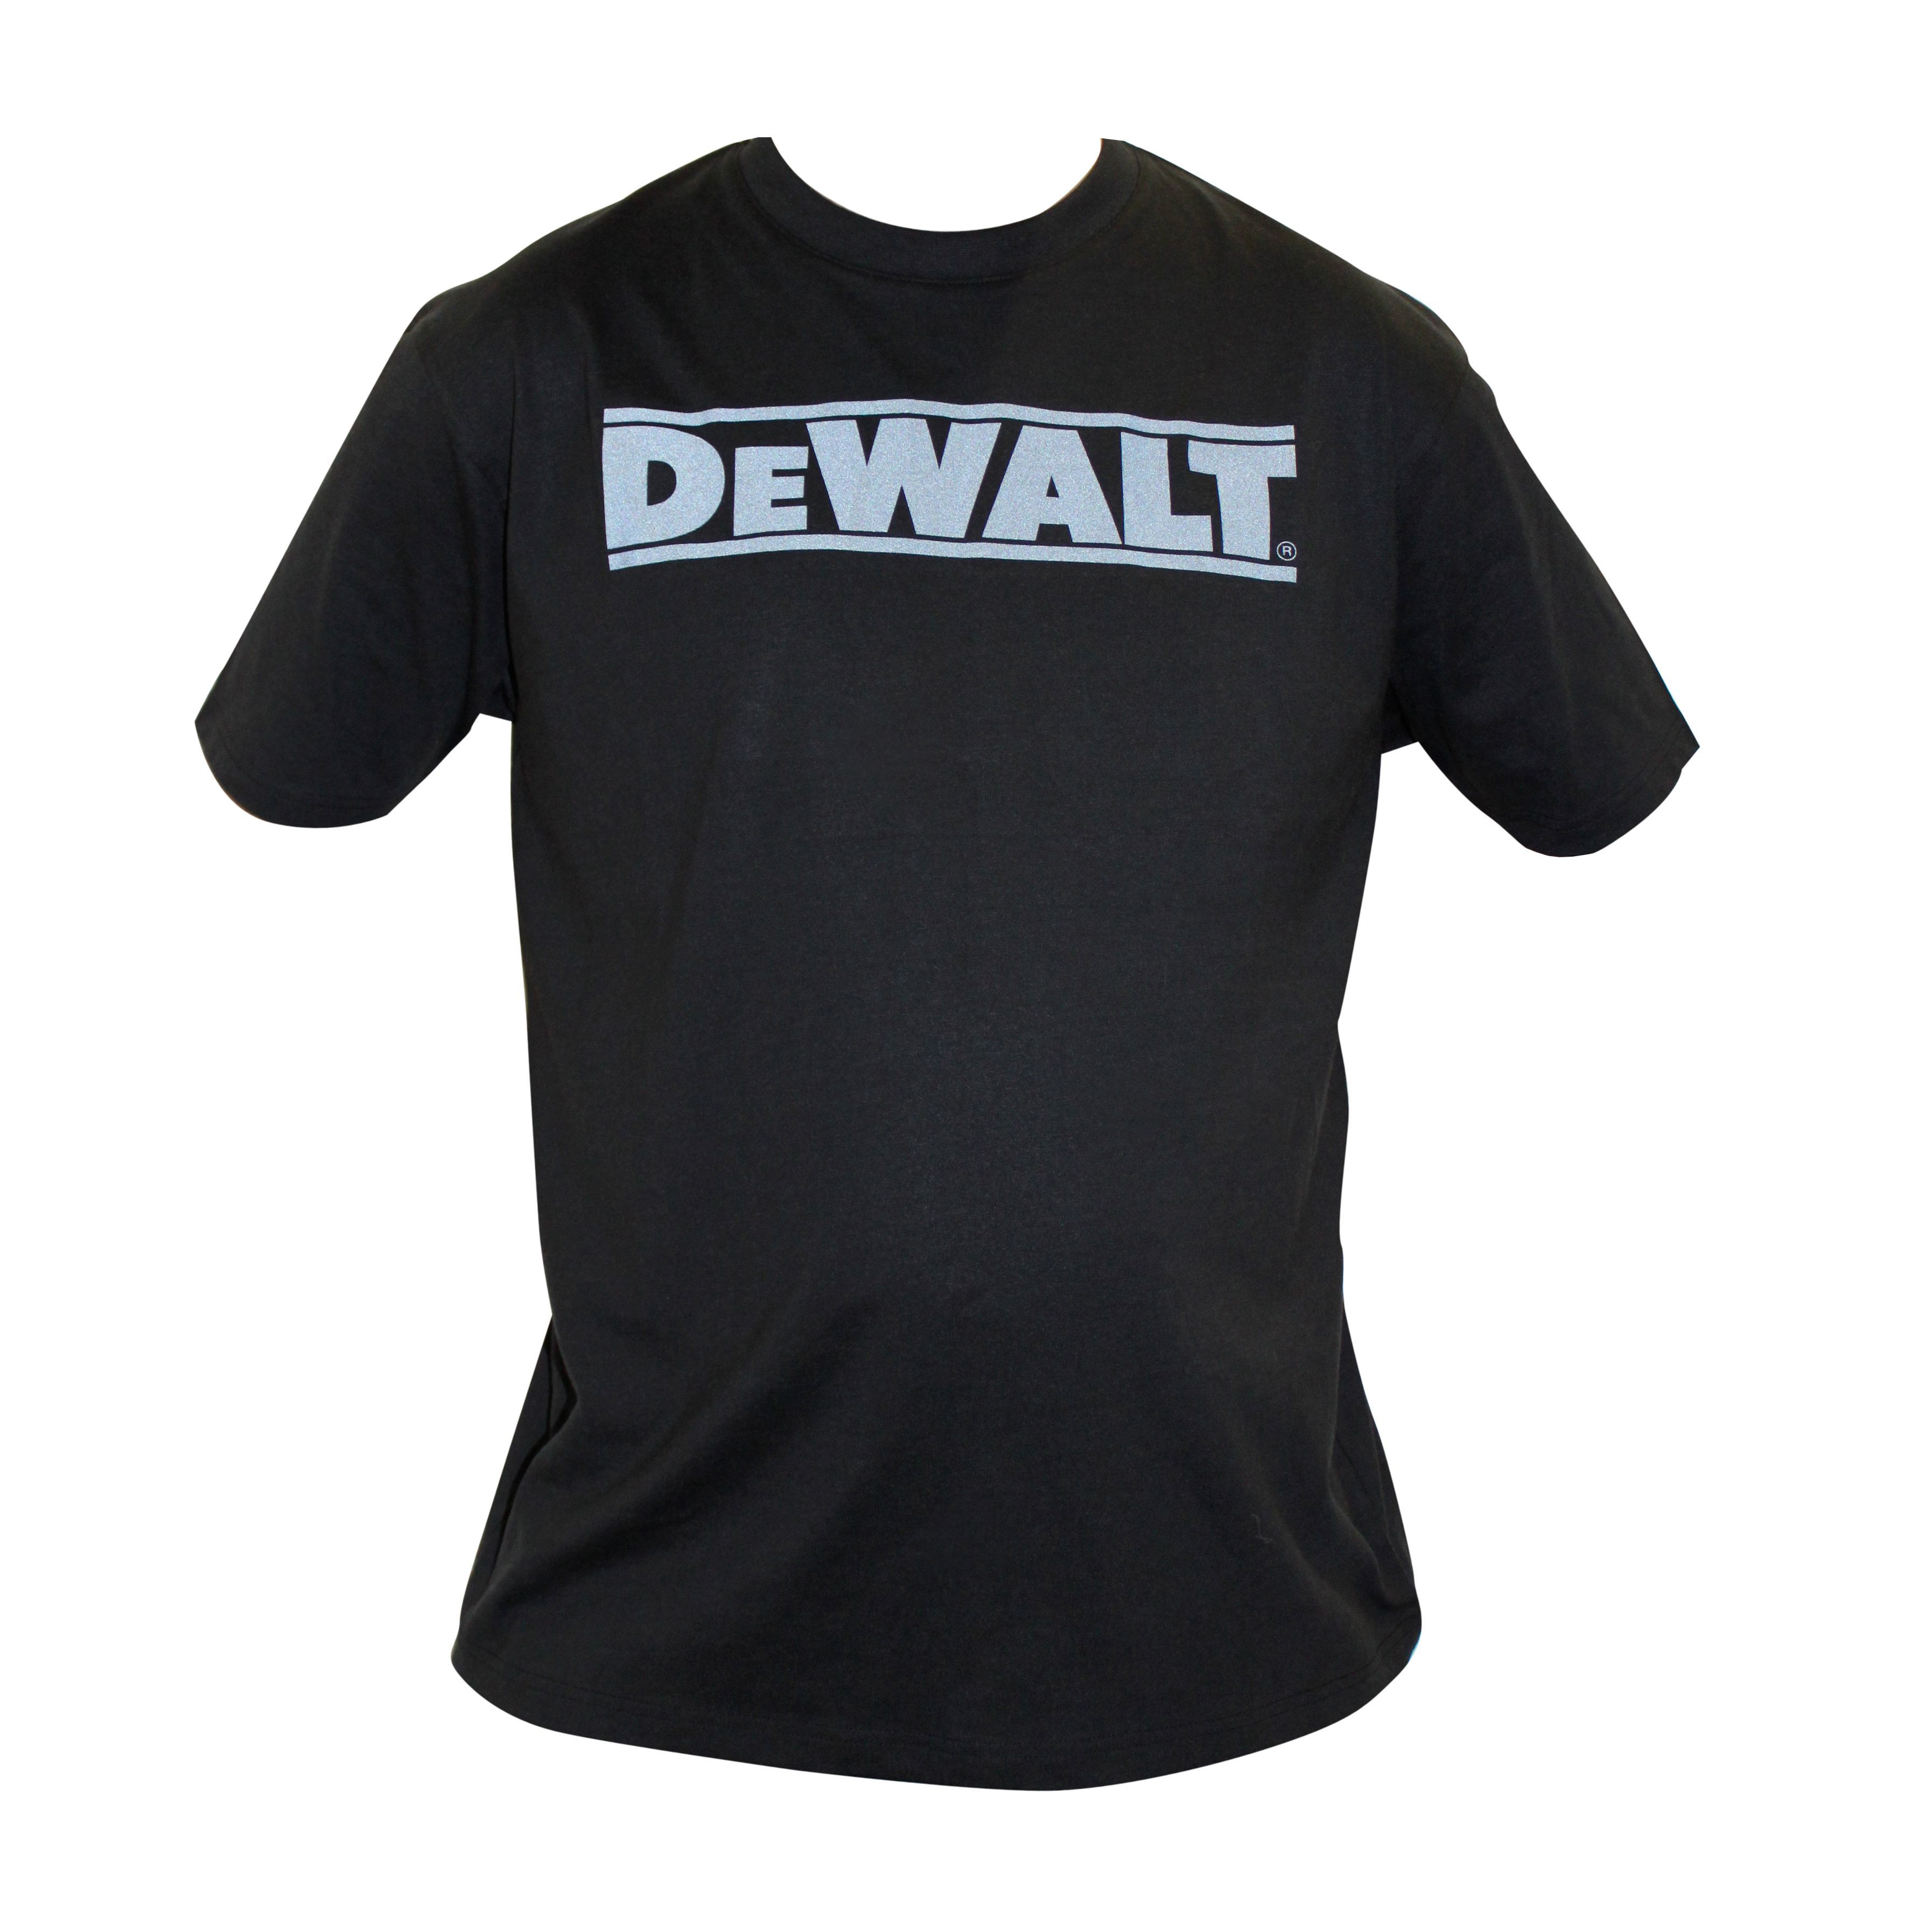 Black t shirt large - Dewalt Black Oxide T Shirt Large